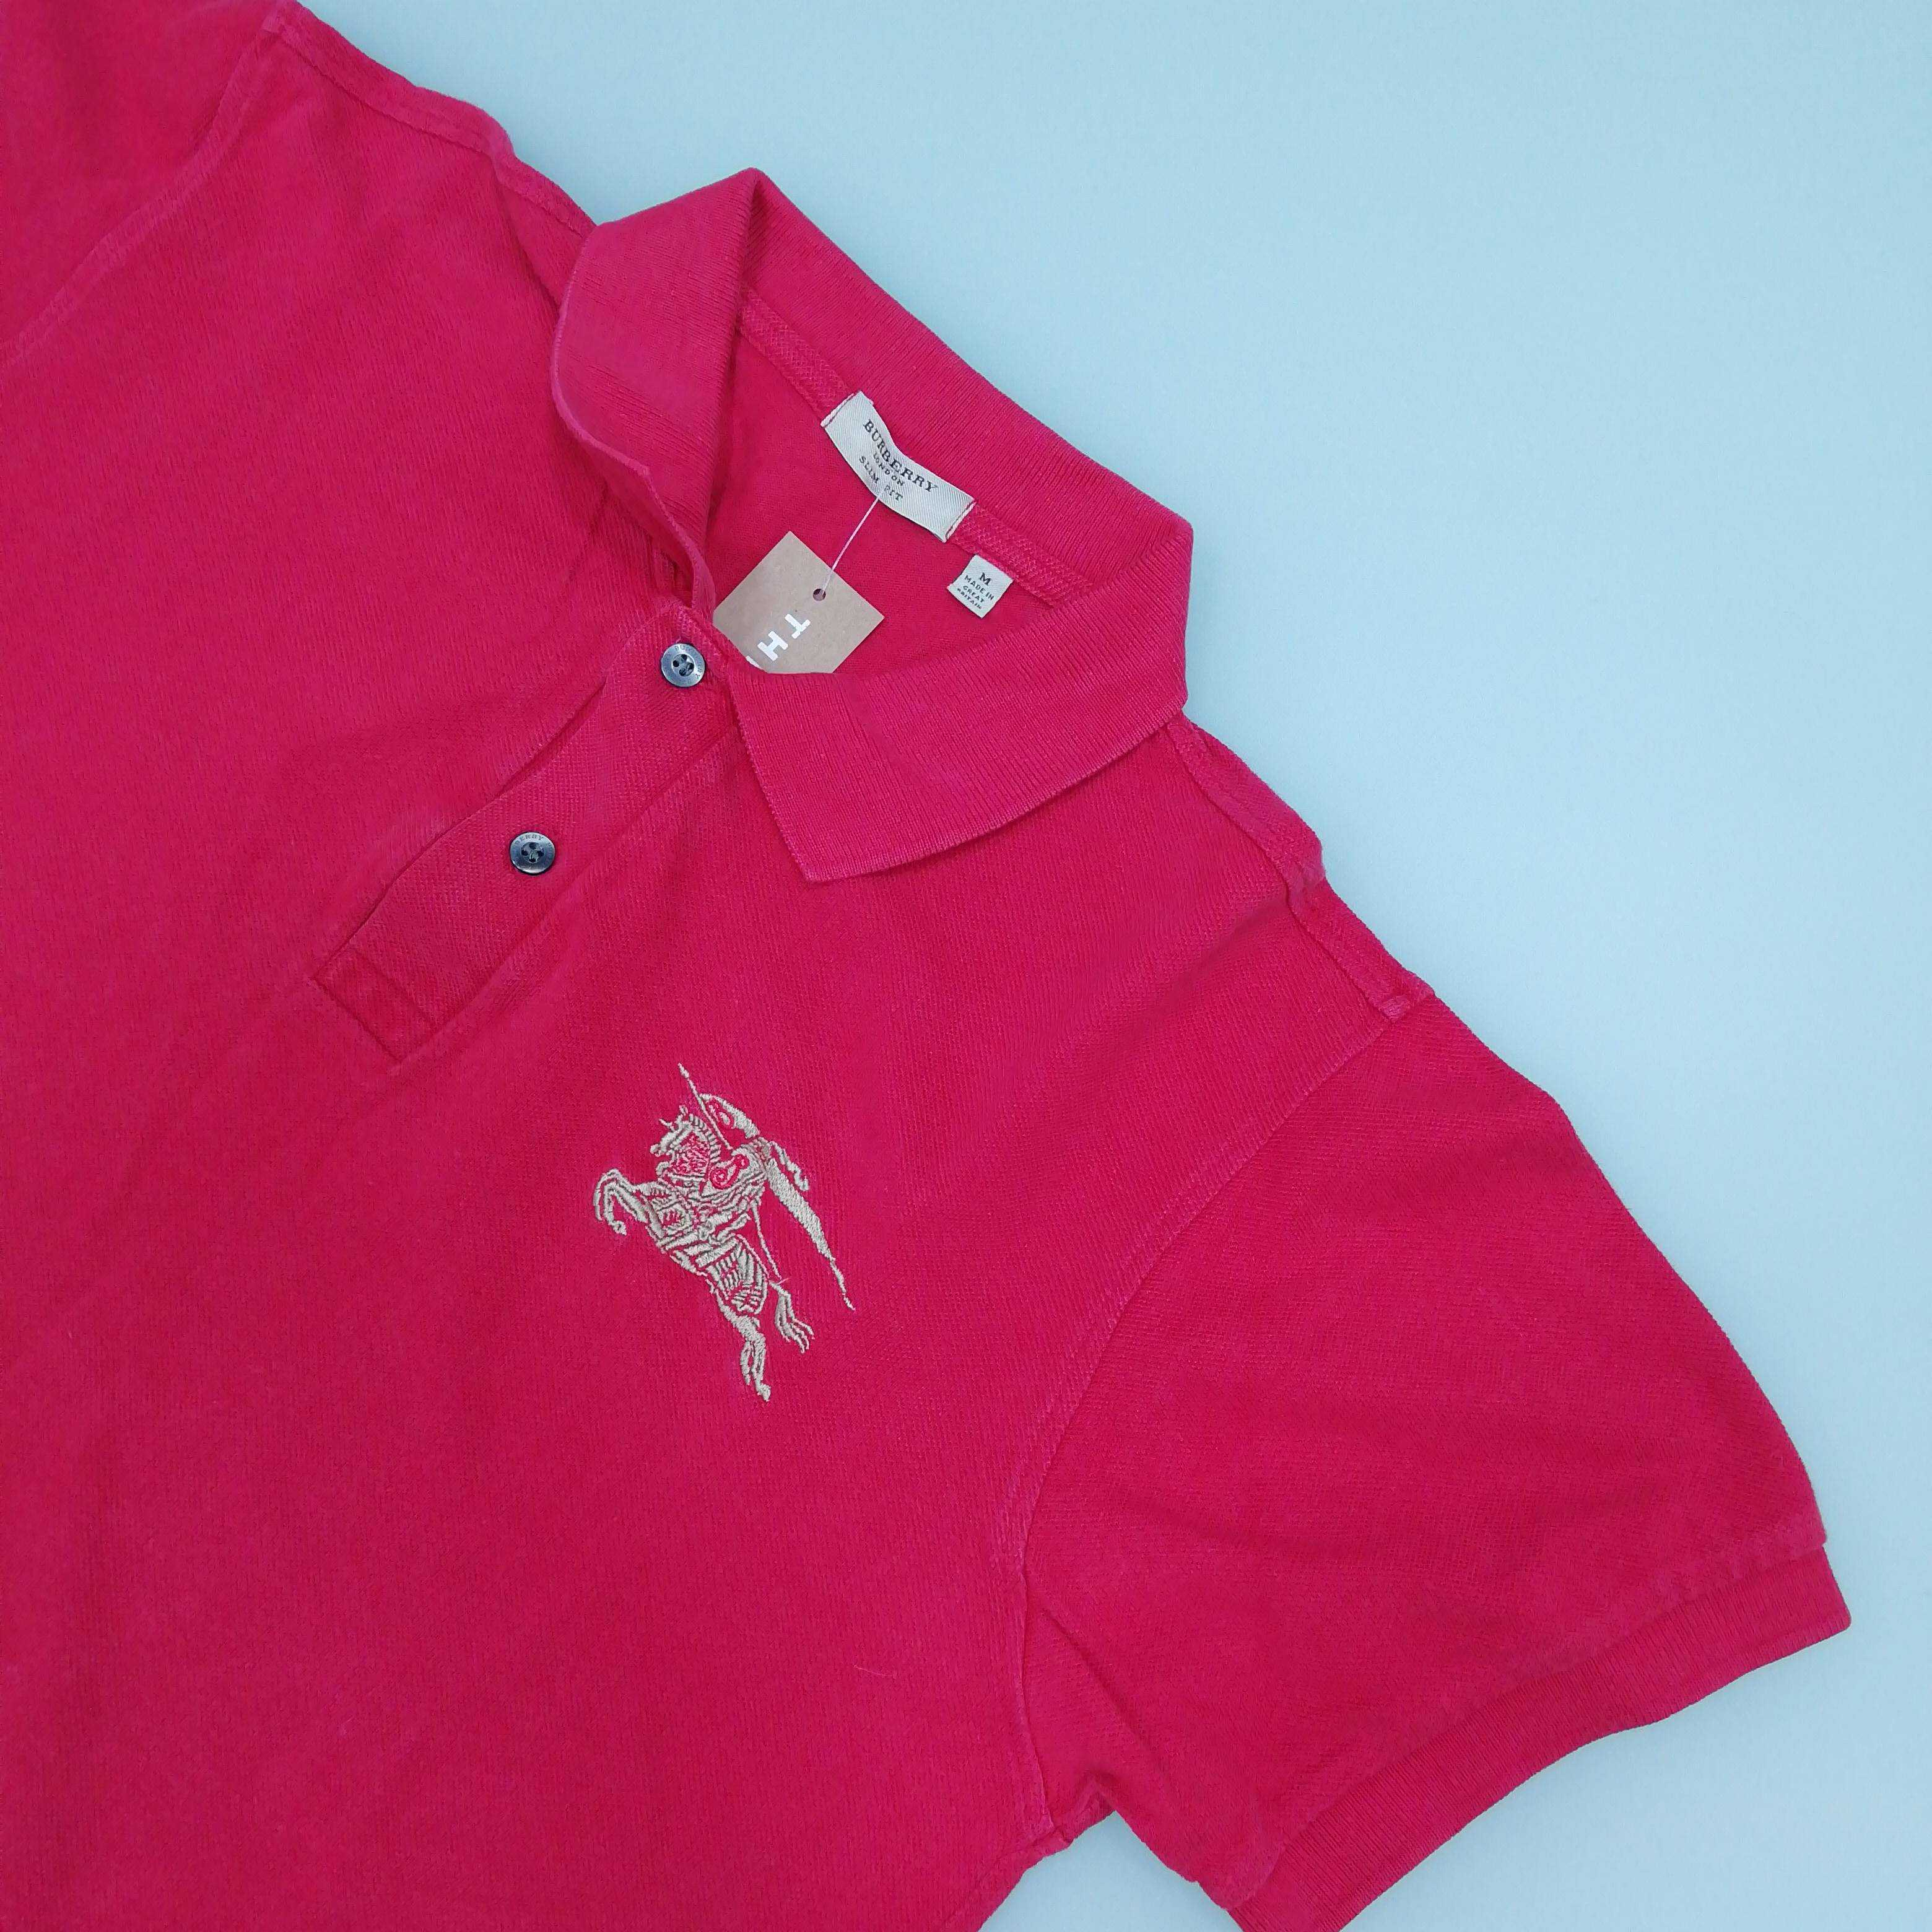 Burberry Men's Short Sleeve Polo Top M Colour: Red